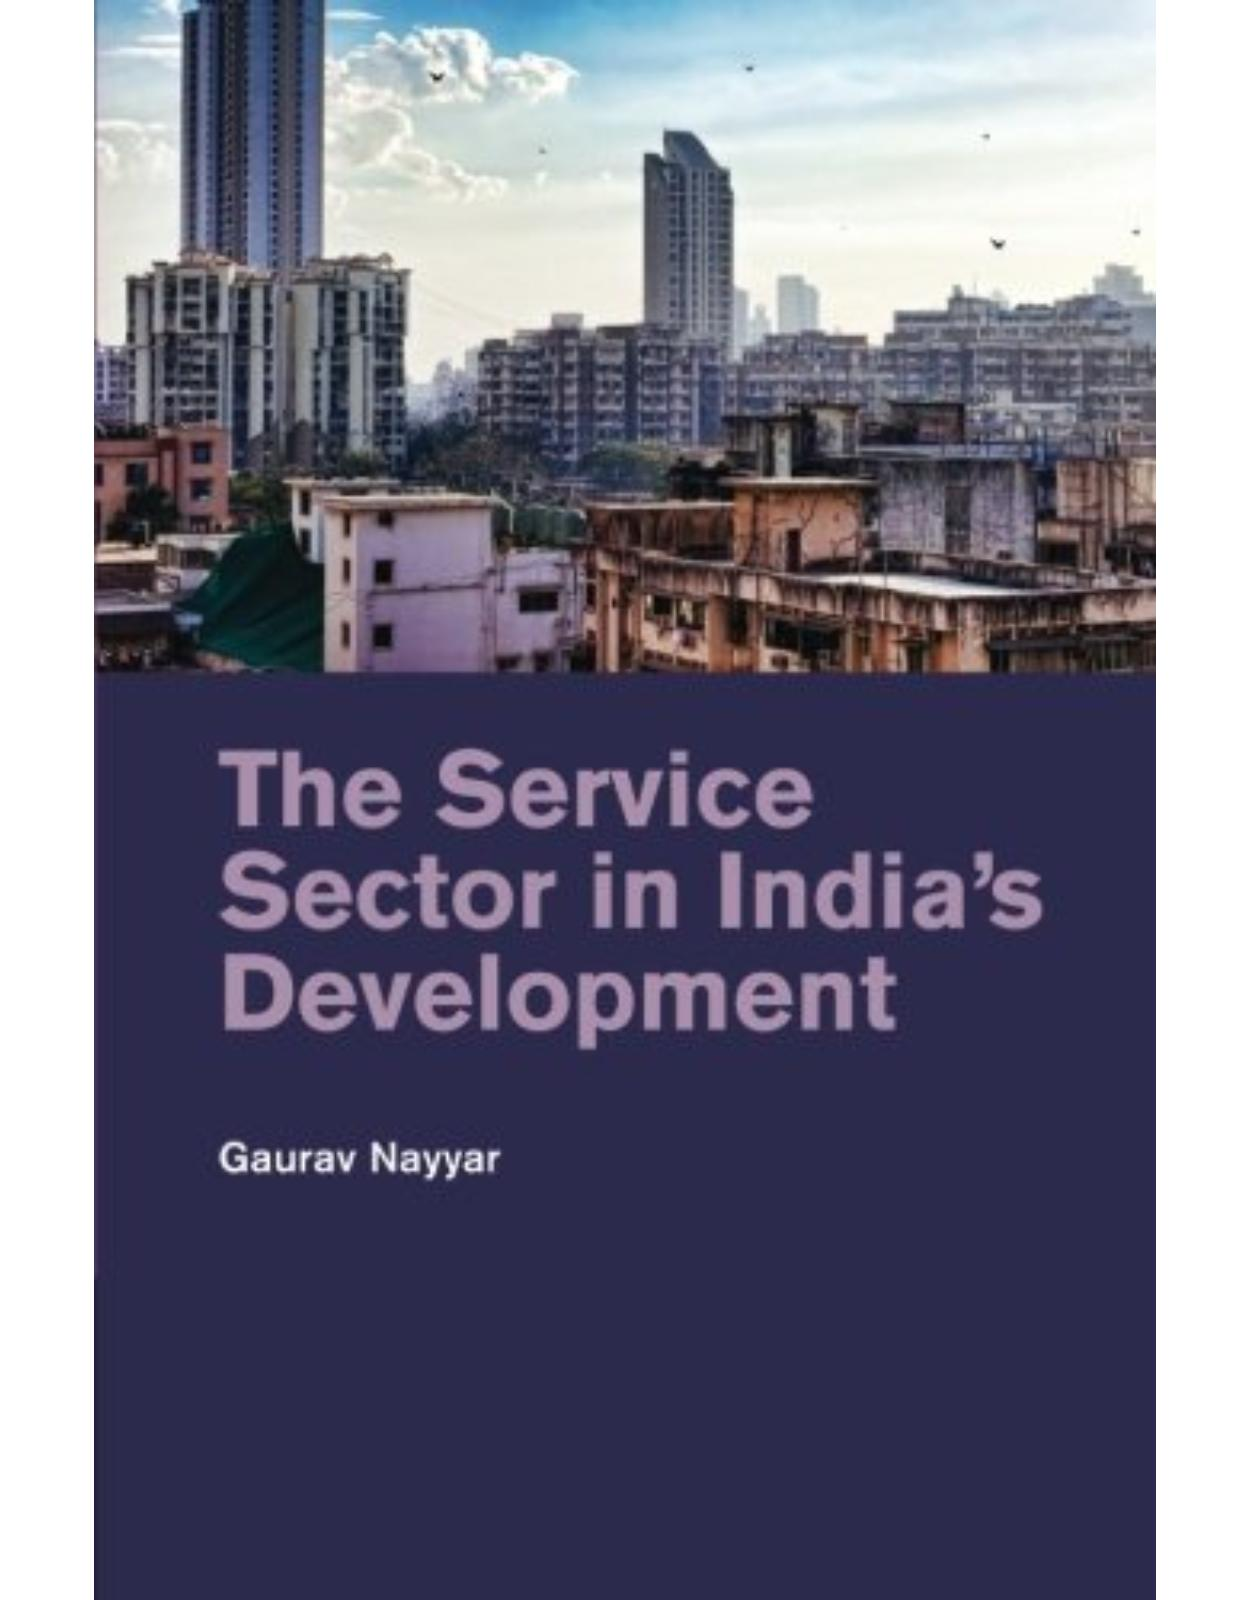 The Service Sector in IndiaÂ's Development